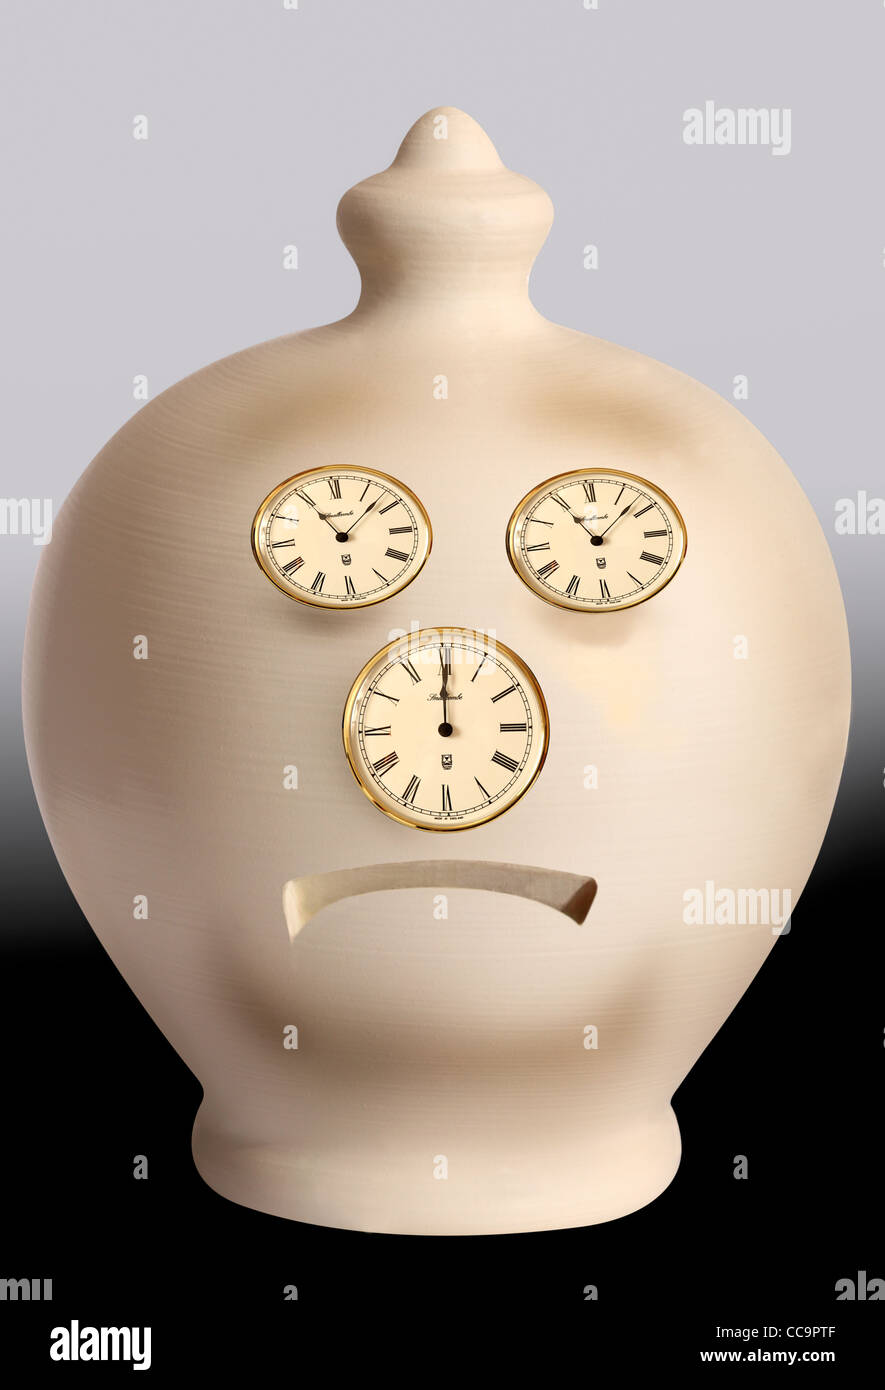 Intended as a slightly humorus look at poor savings rates, this image shows a sad face made from clock faces to - Stock Image